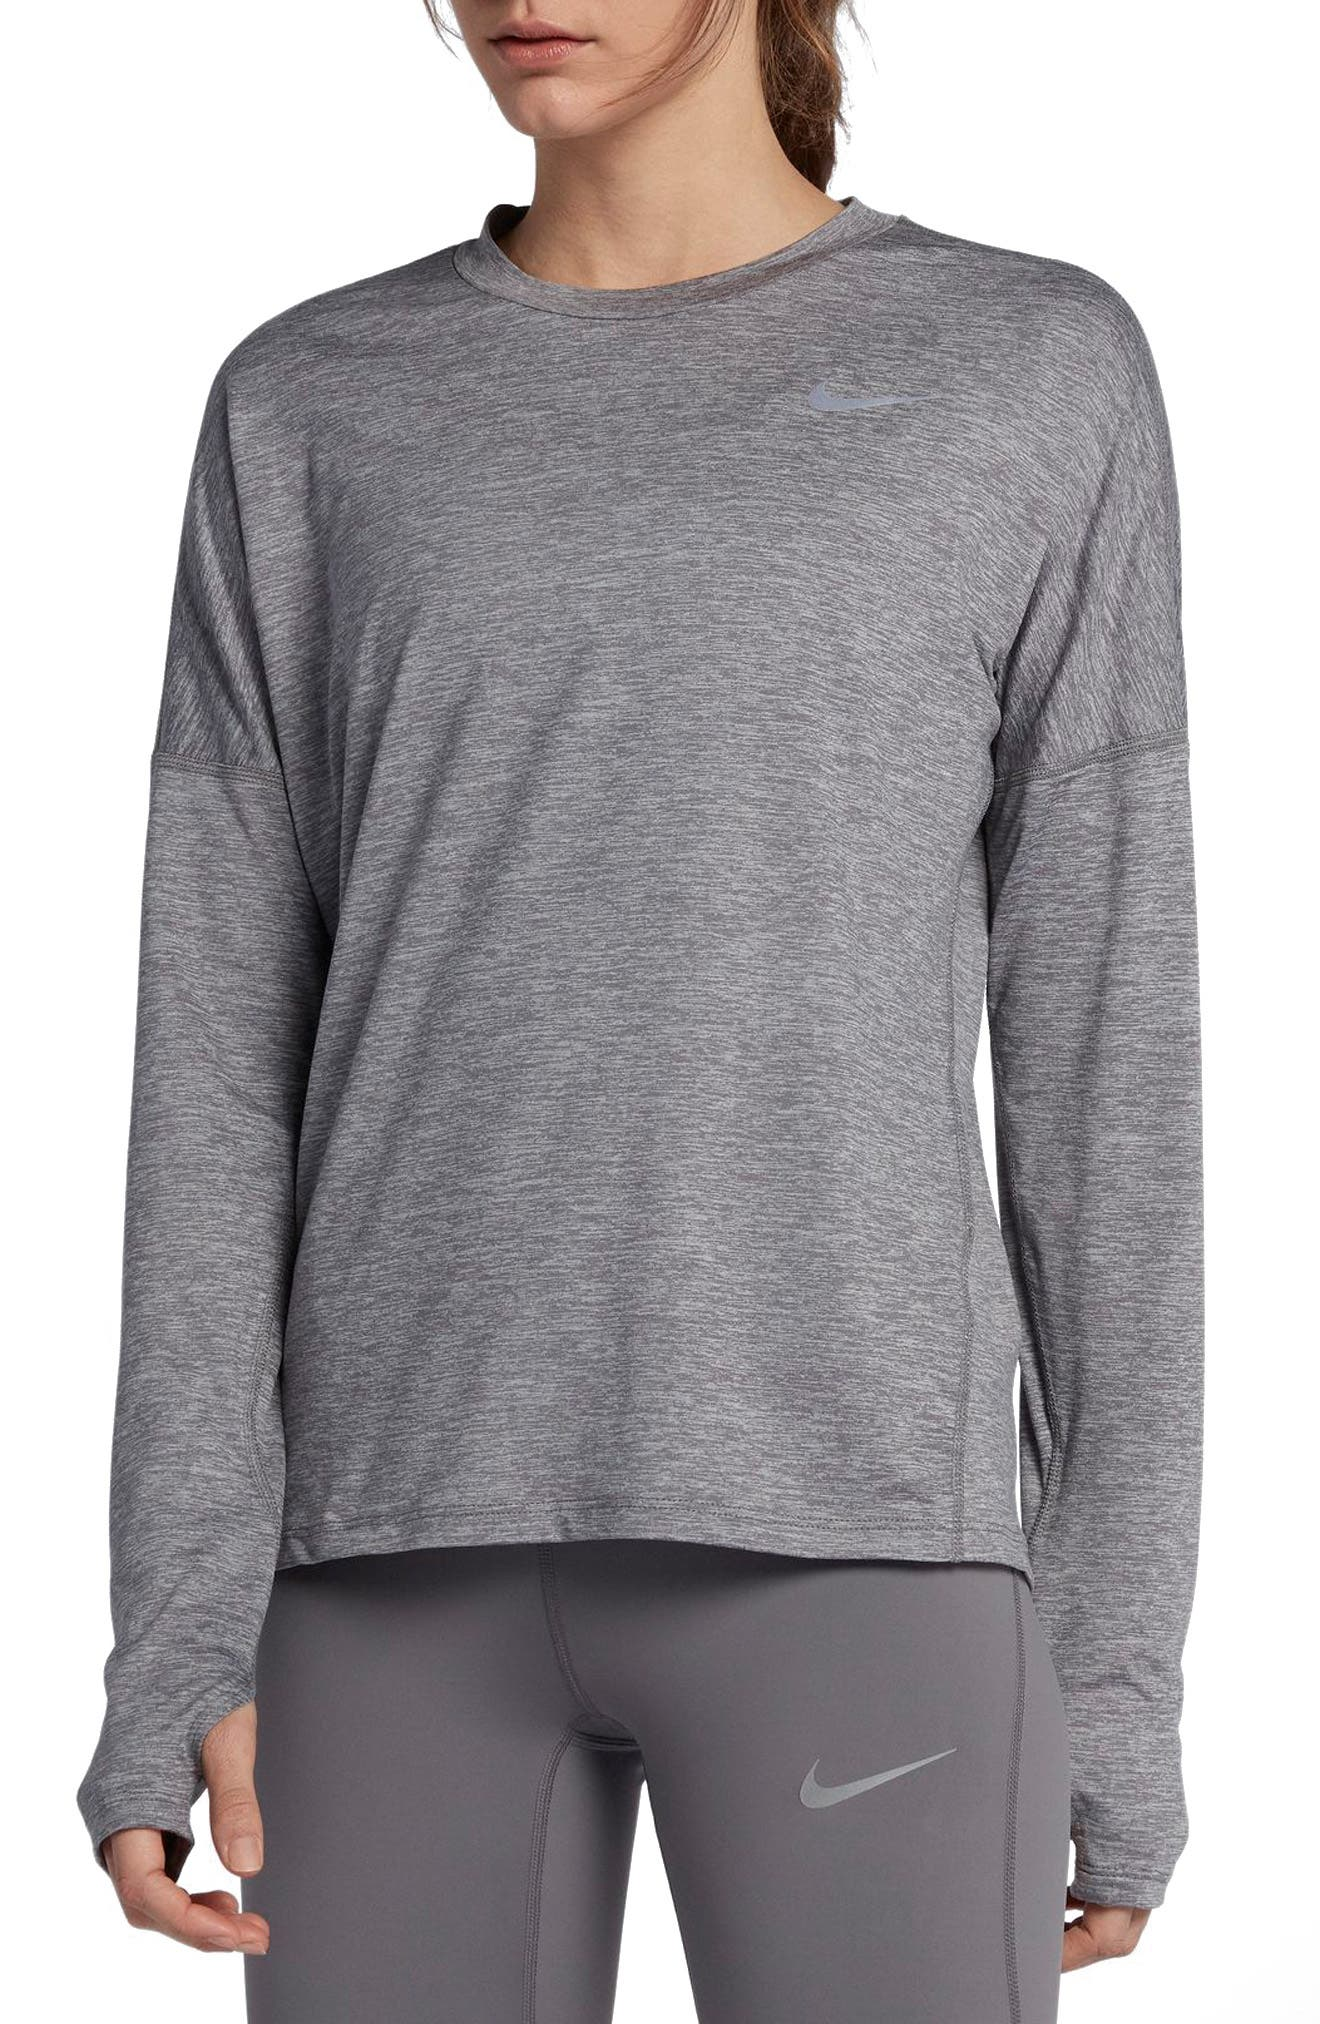 NIKE Dry Element Long Sleeve Top, Main, color, 036